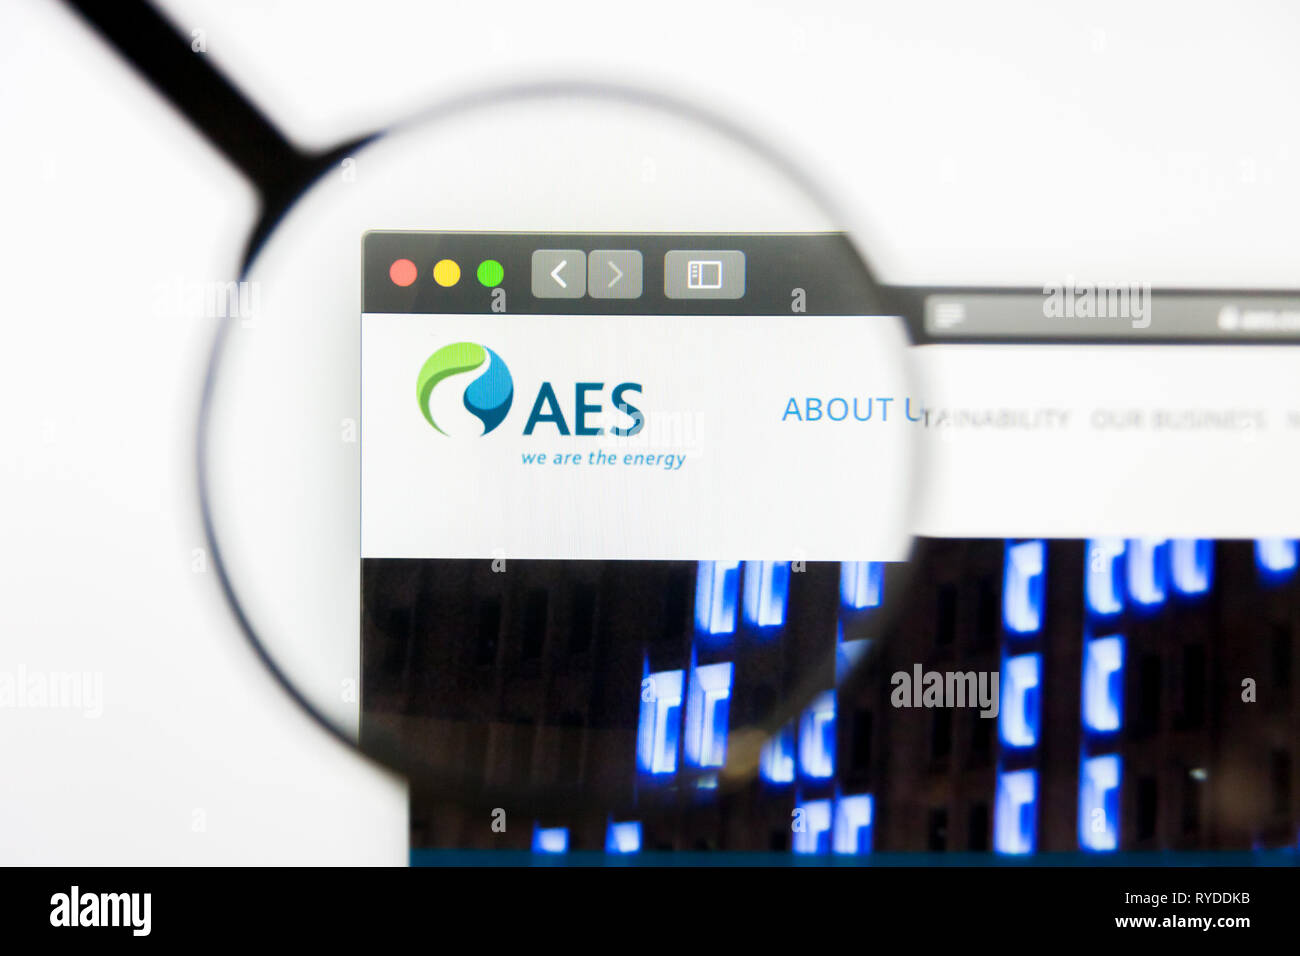 Los Angeles, California, USA - 12 March 2019: Illustrative Editorial, AES website homepage. AES logo visible on screen - Stock Image